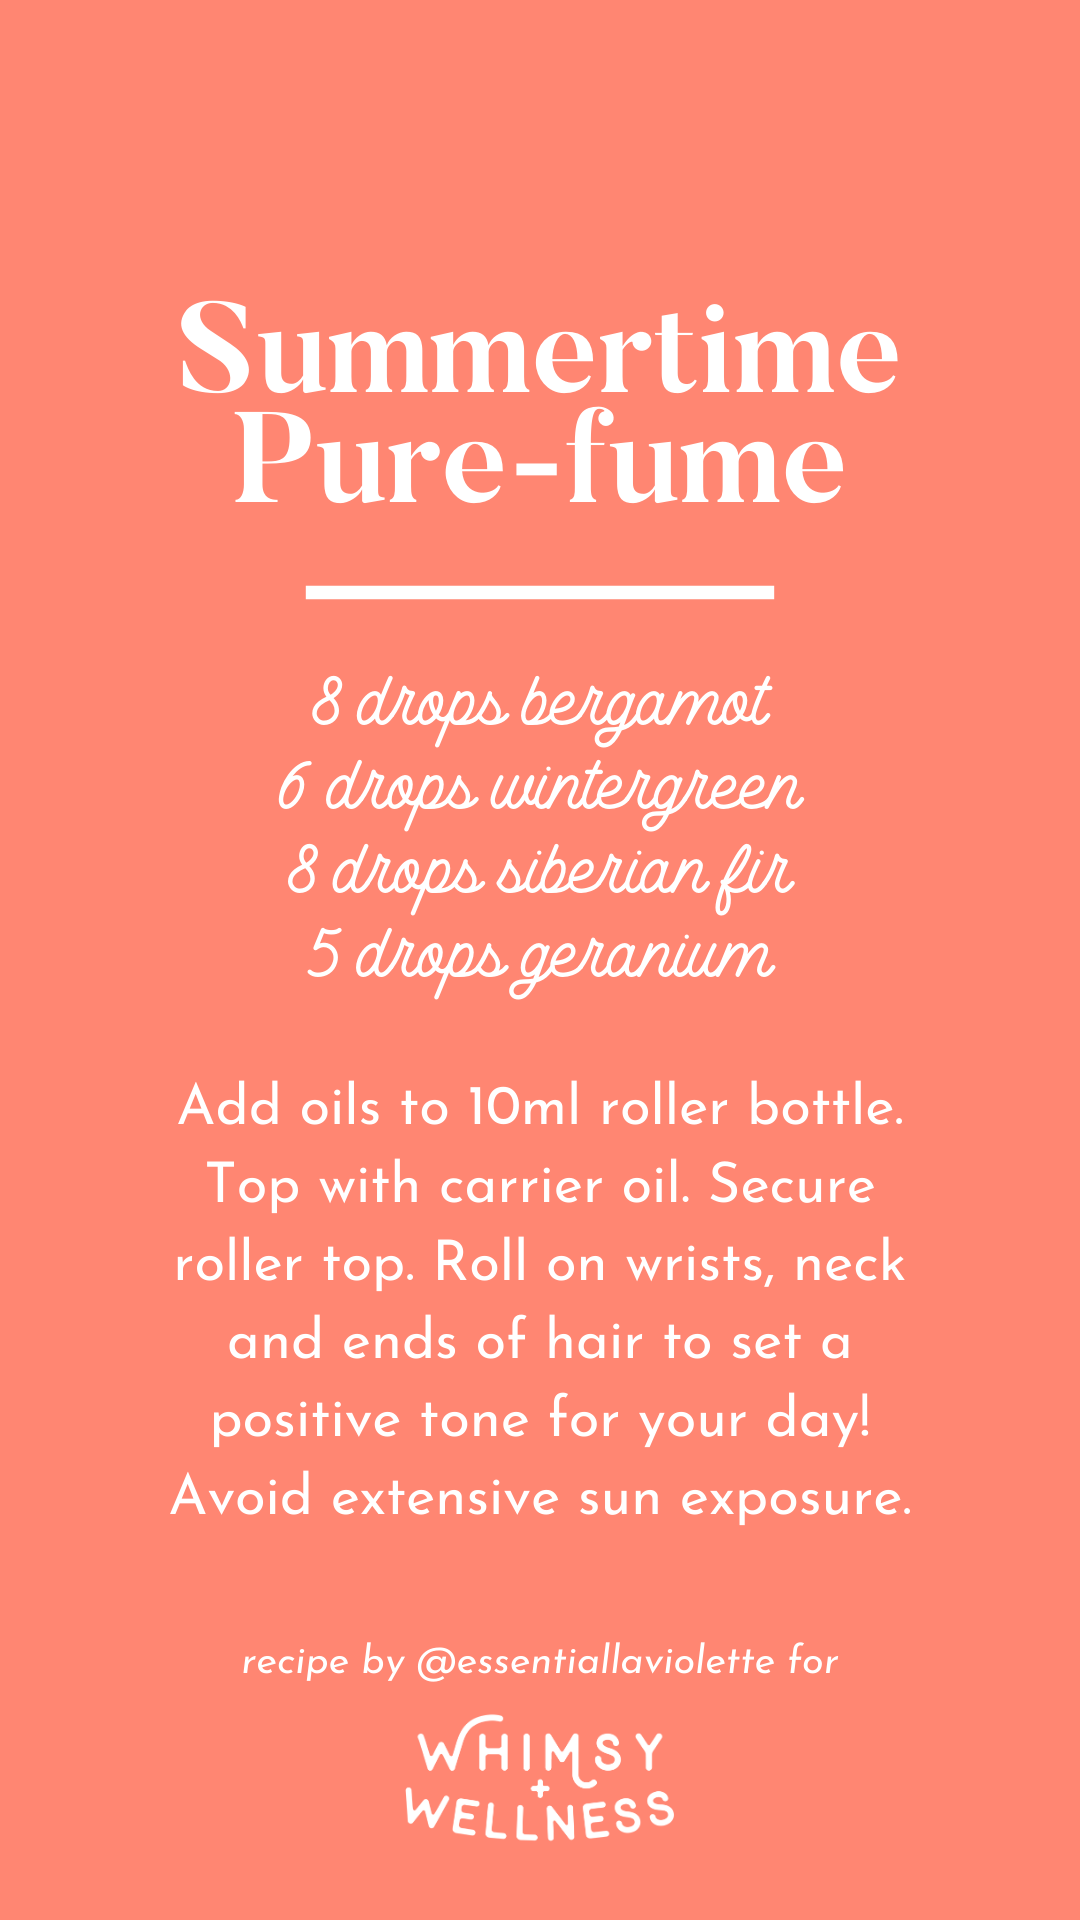 Summertime perfume roller bottle recipe using doTERRA essential oils